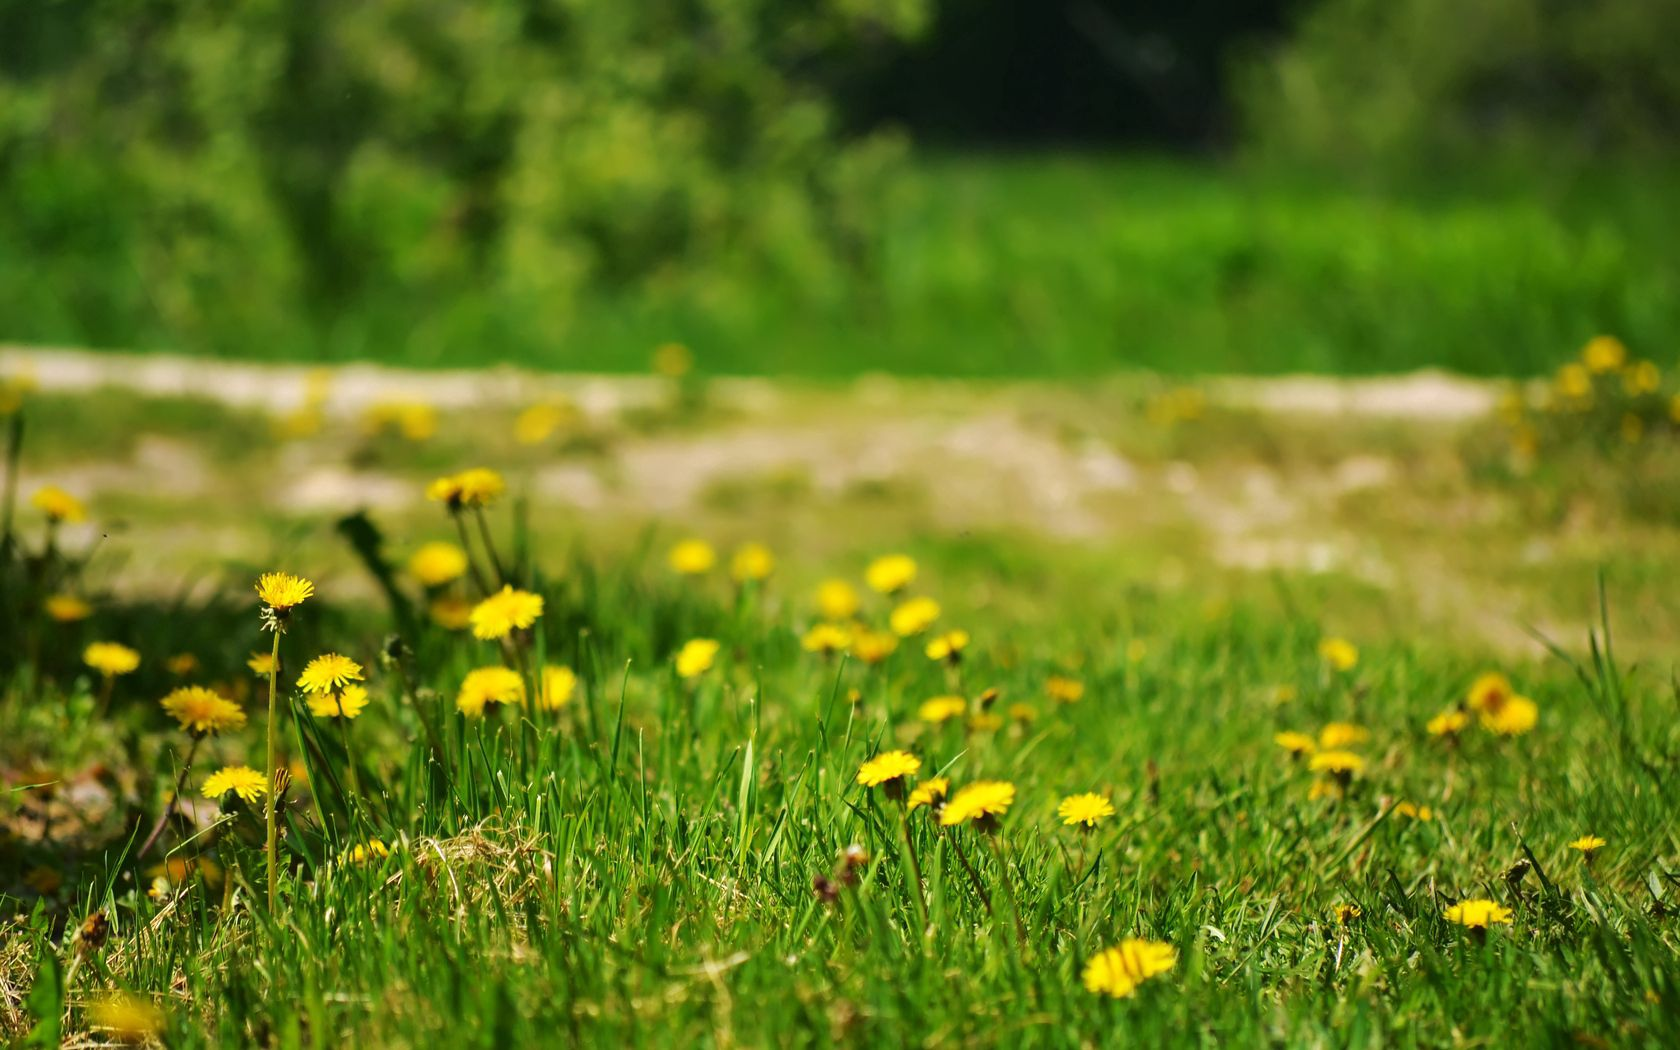 121096 Screensavers and Wallpapers Dandelions for phone. Download Nature, Grass, Dandelions, Polyana, Glade pictures for free